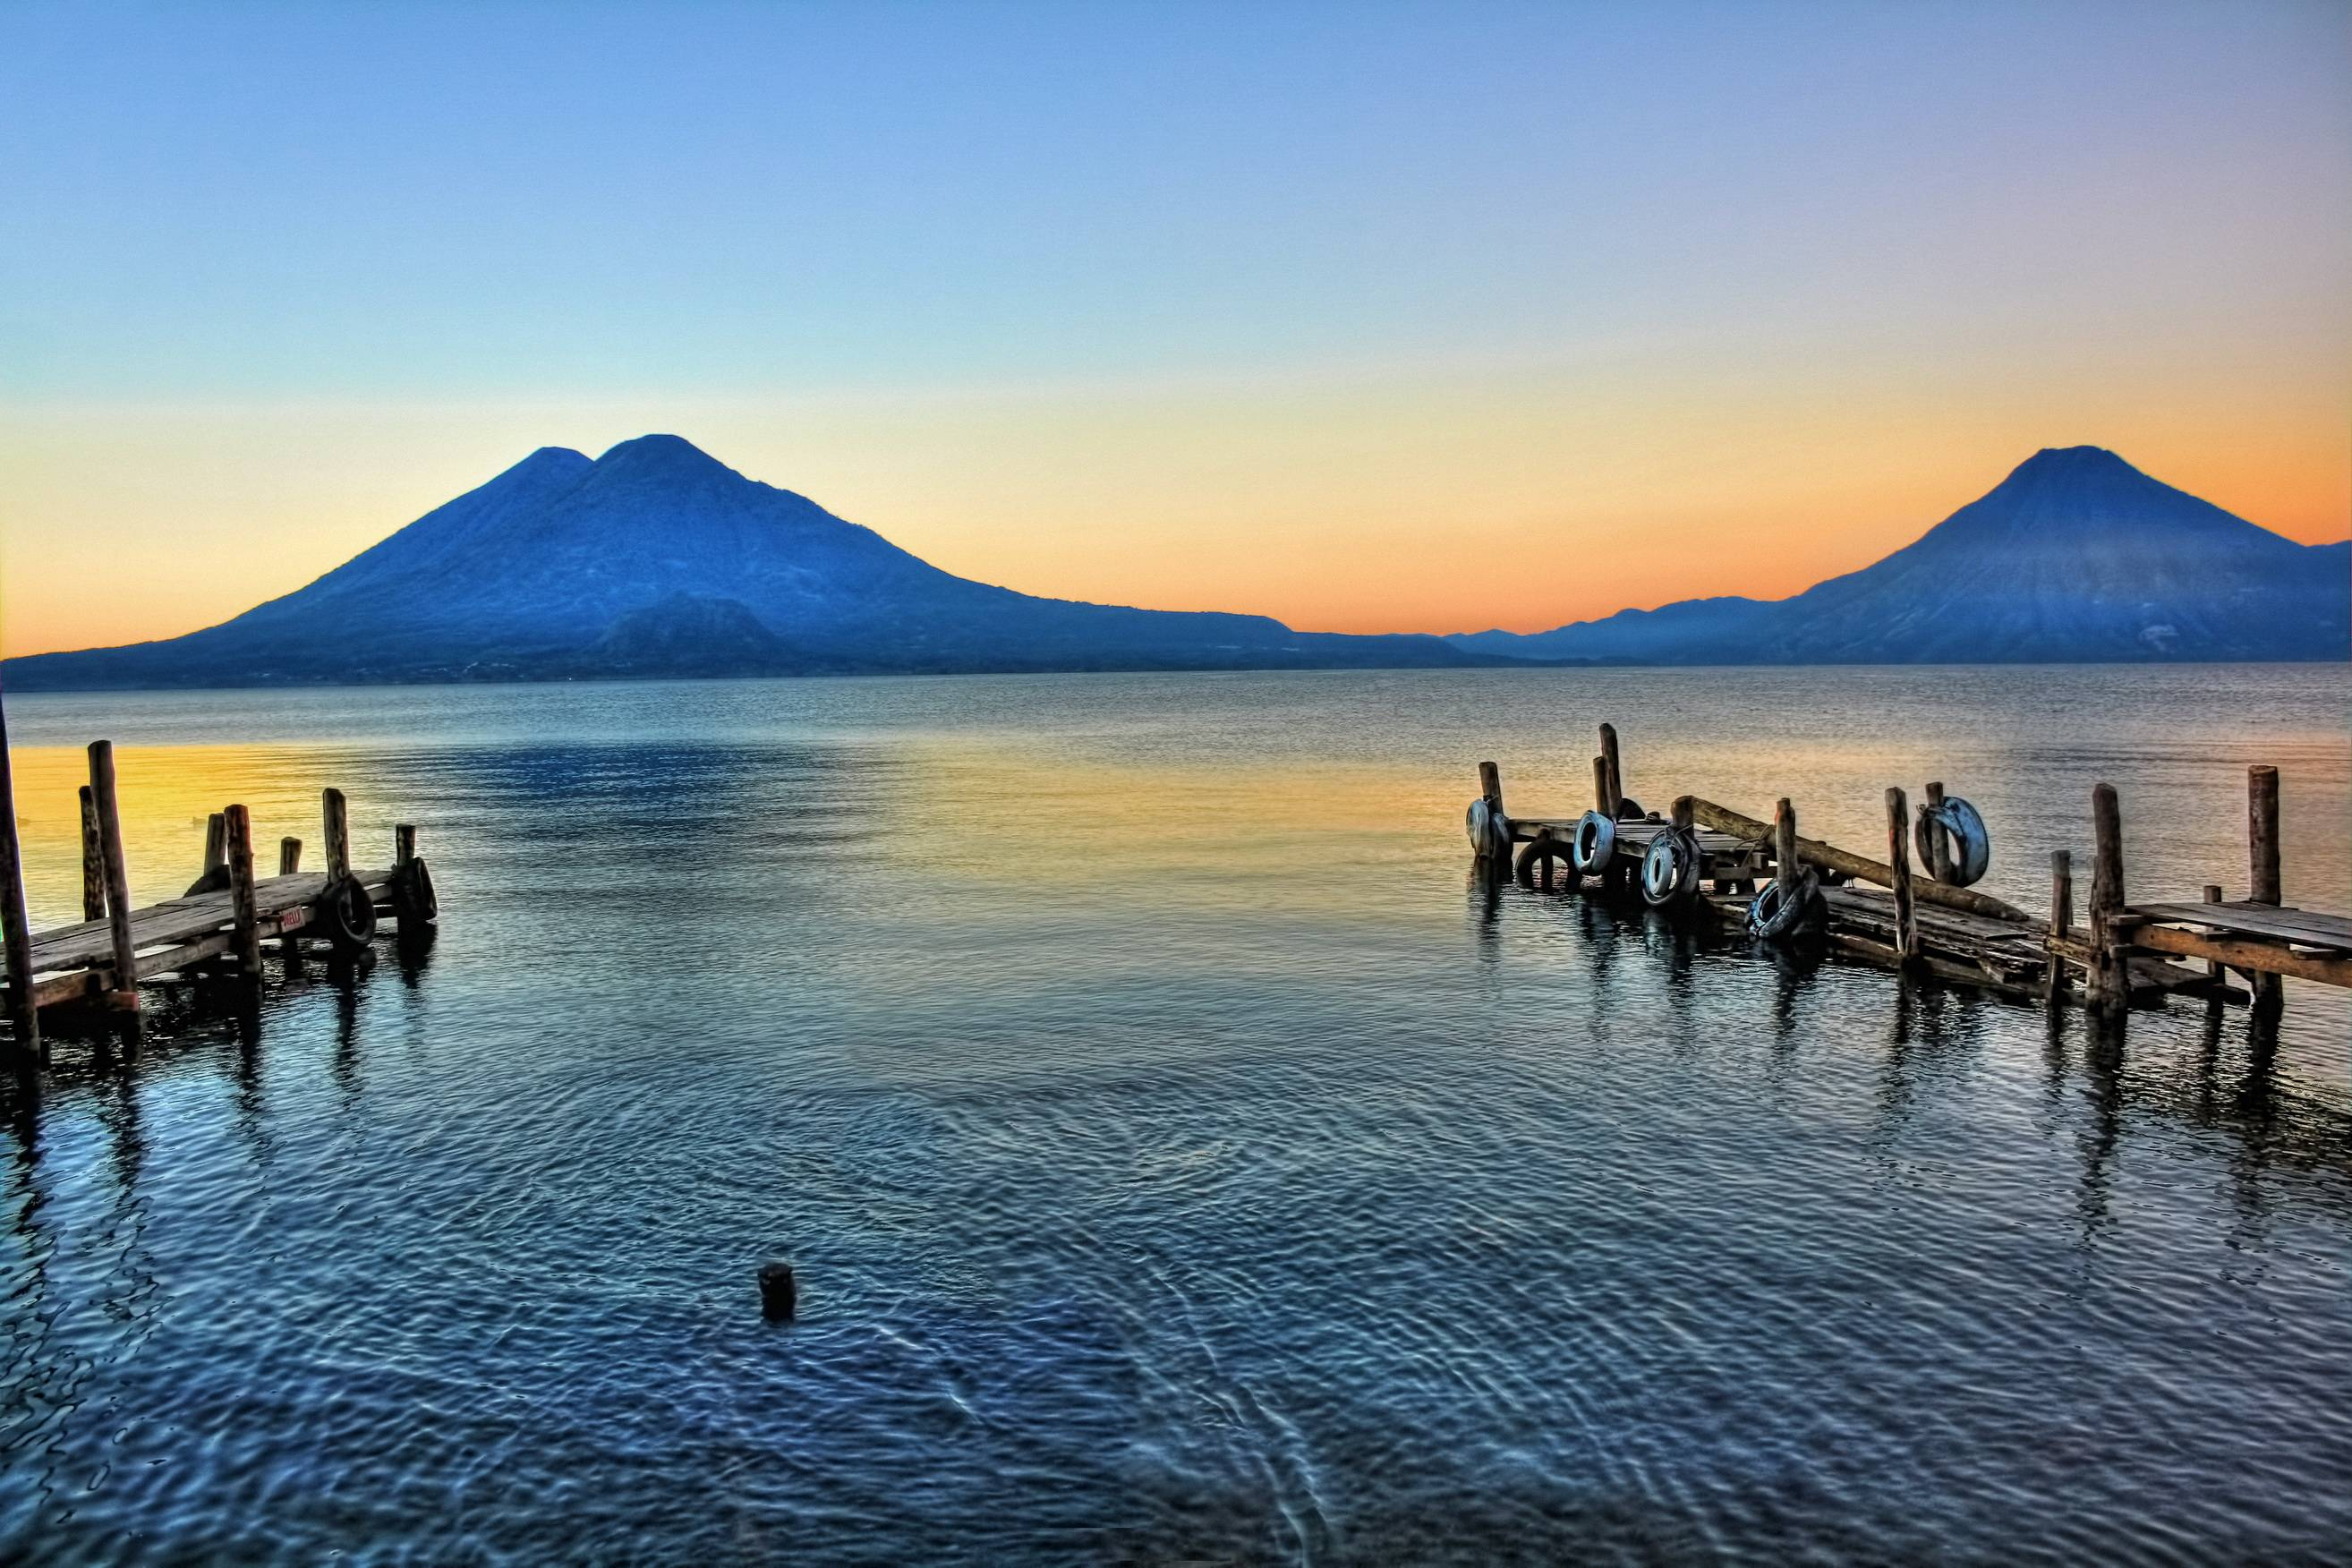 Download wallpapers lake, volcan, san pedro, guatemala free desktop